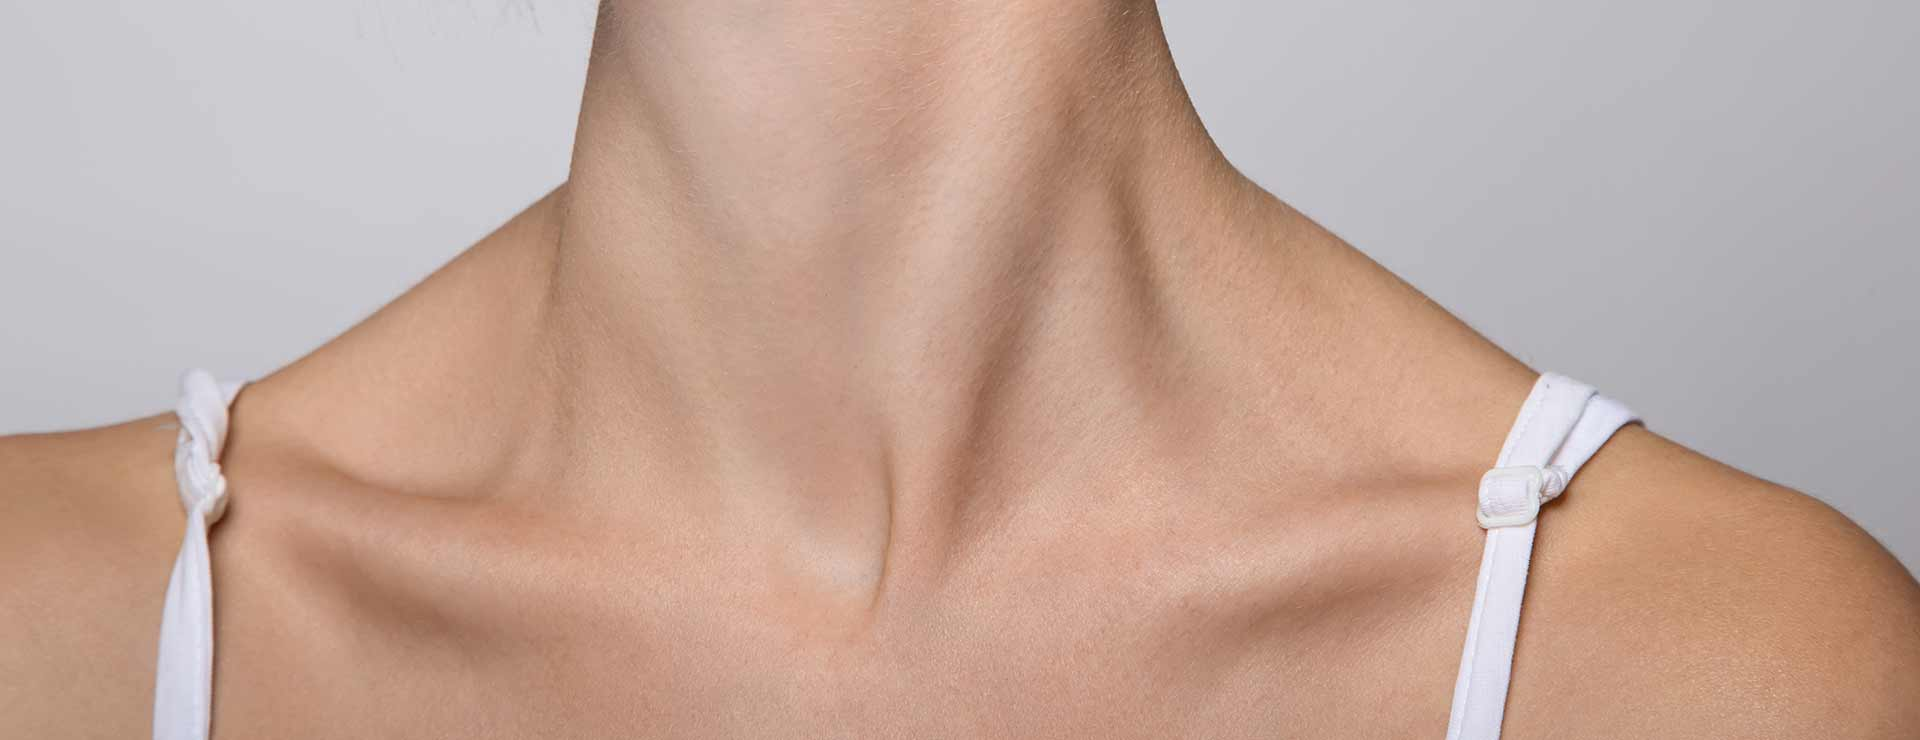 woman's neck and collar bones